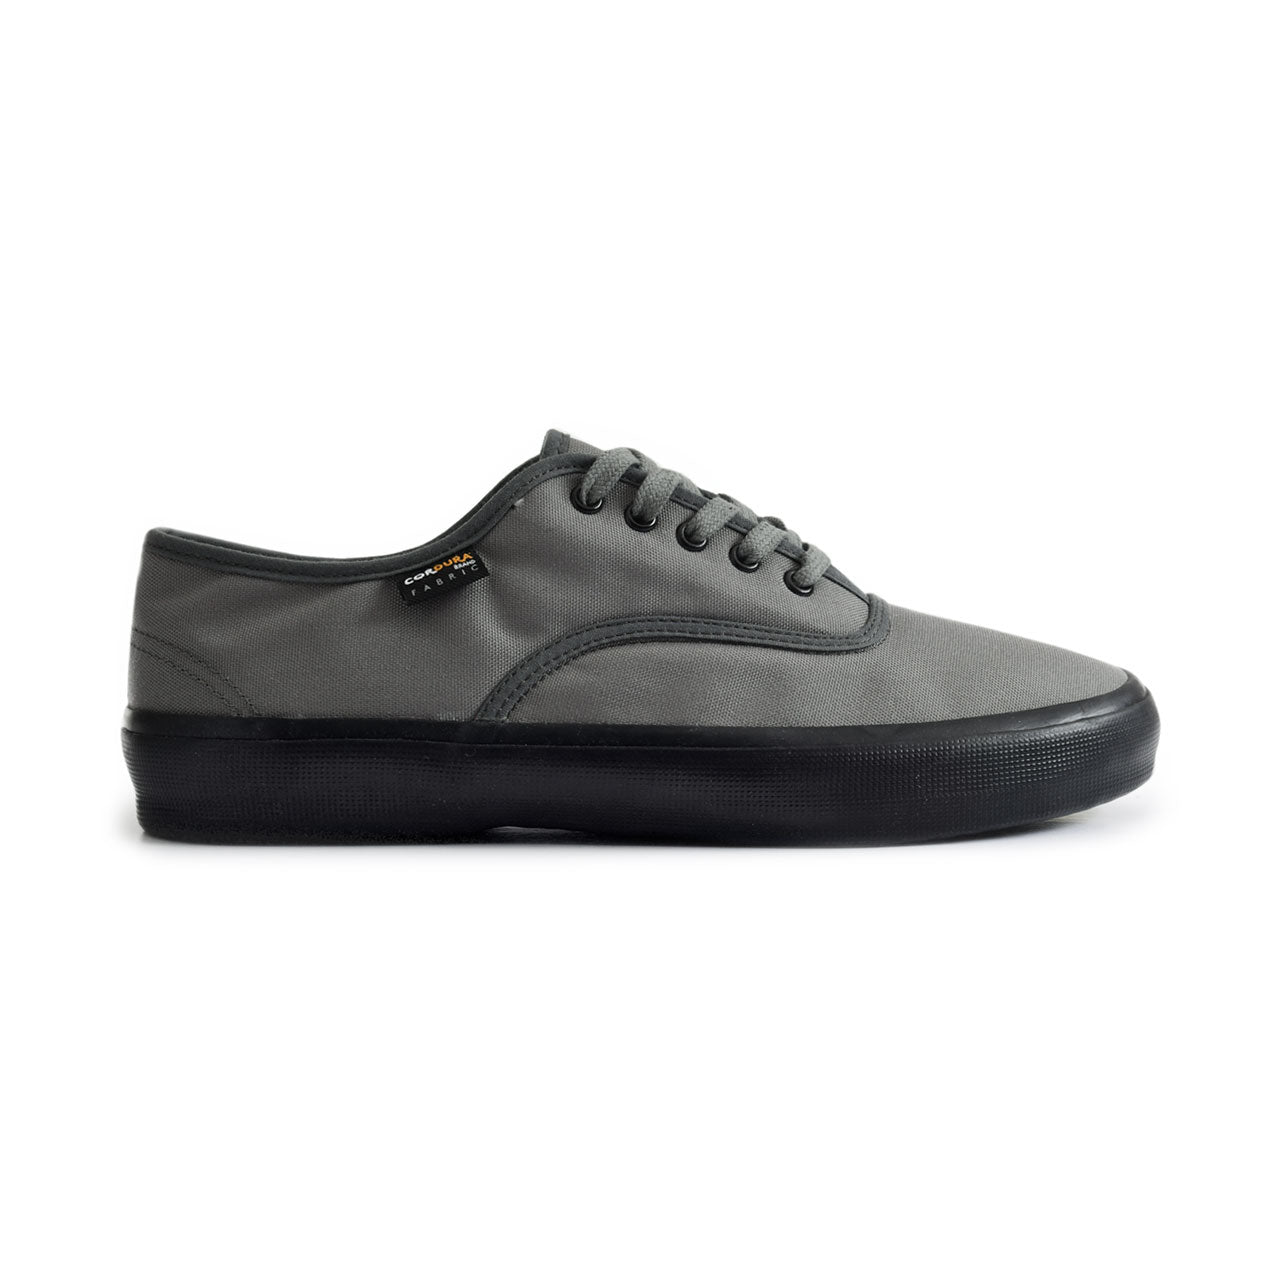 US Navy Military Trainer Sneaker